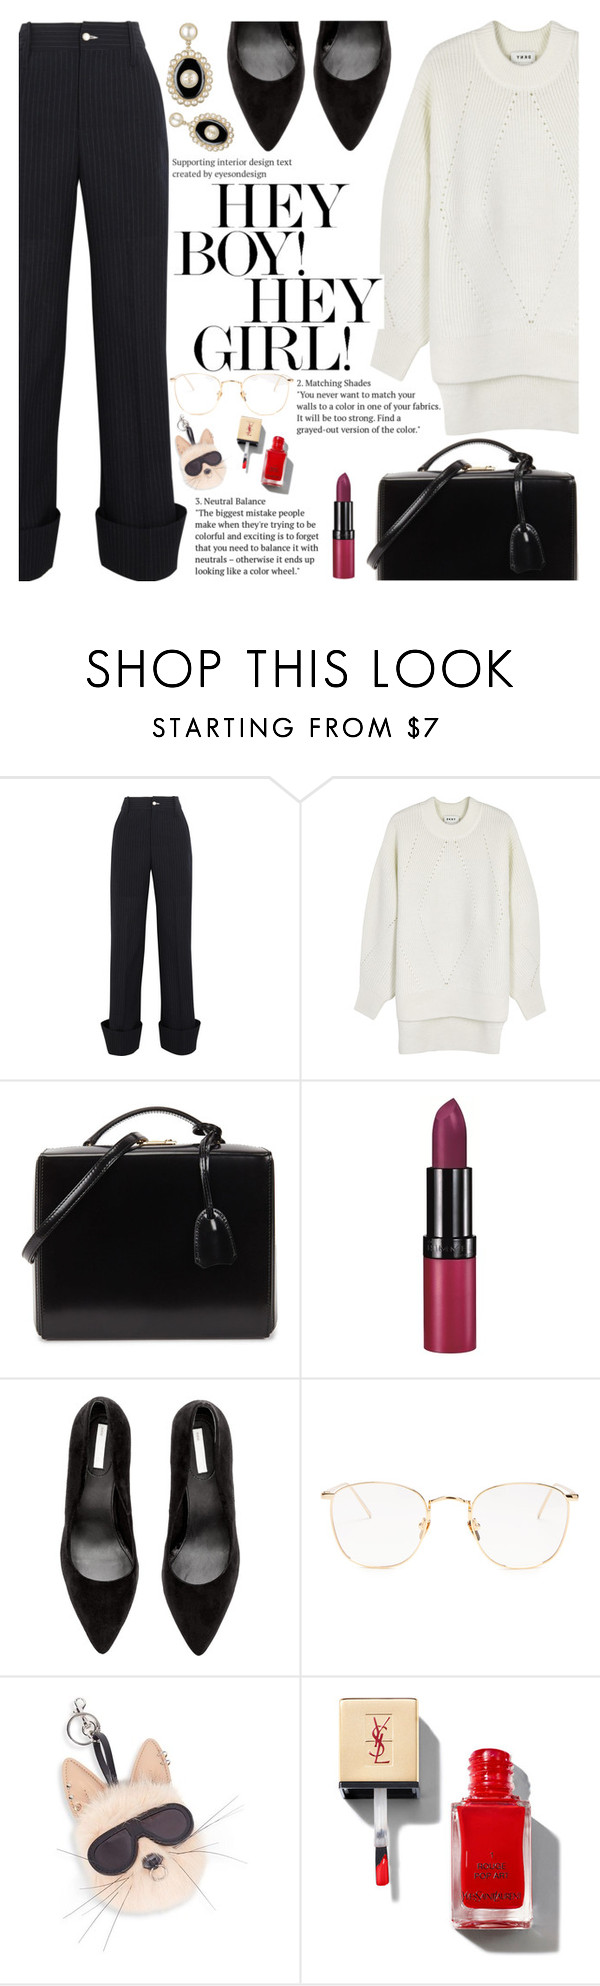 """""""Untitled #2147"""" by anarita11 ❤ liked on Polyvore featuring Jacquemus, DKNY, Mark Cross, Rimmel, Linda Farrow and STELLA McCARTNEY"""